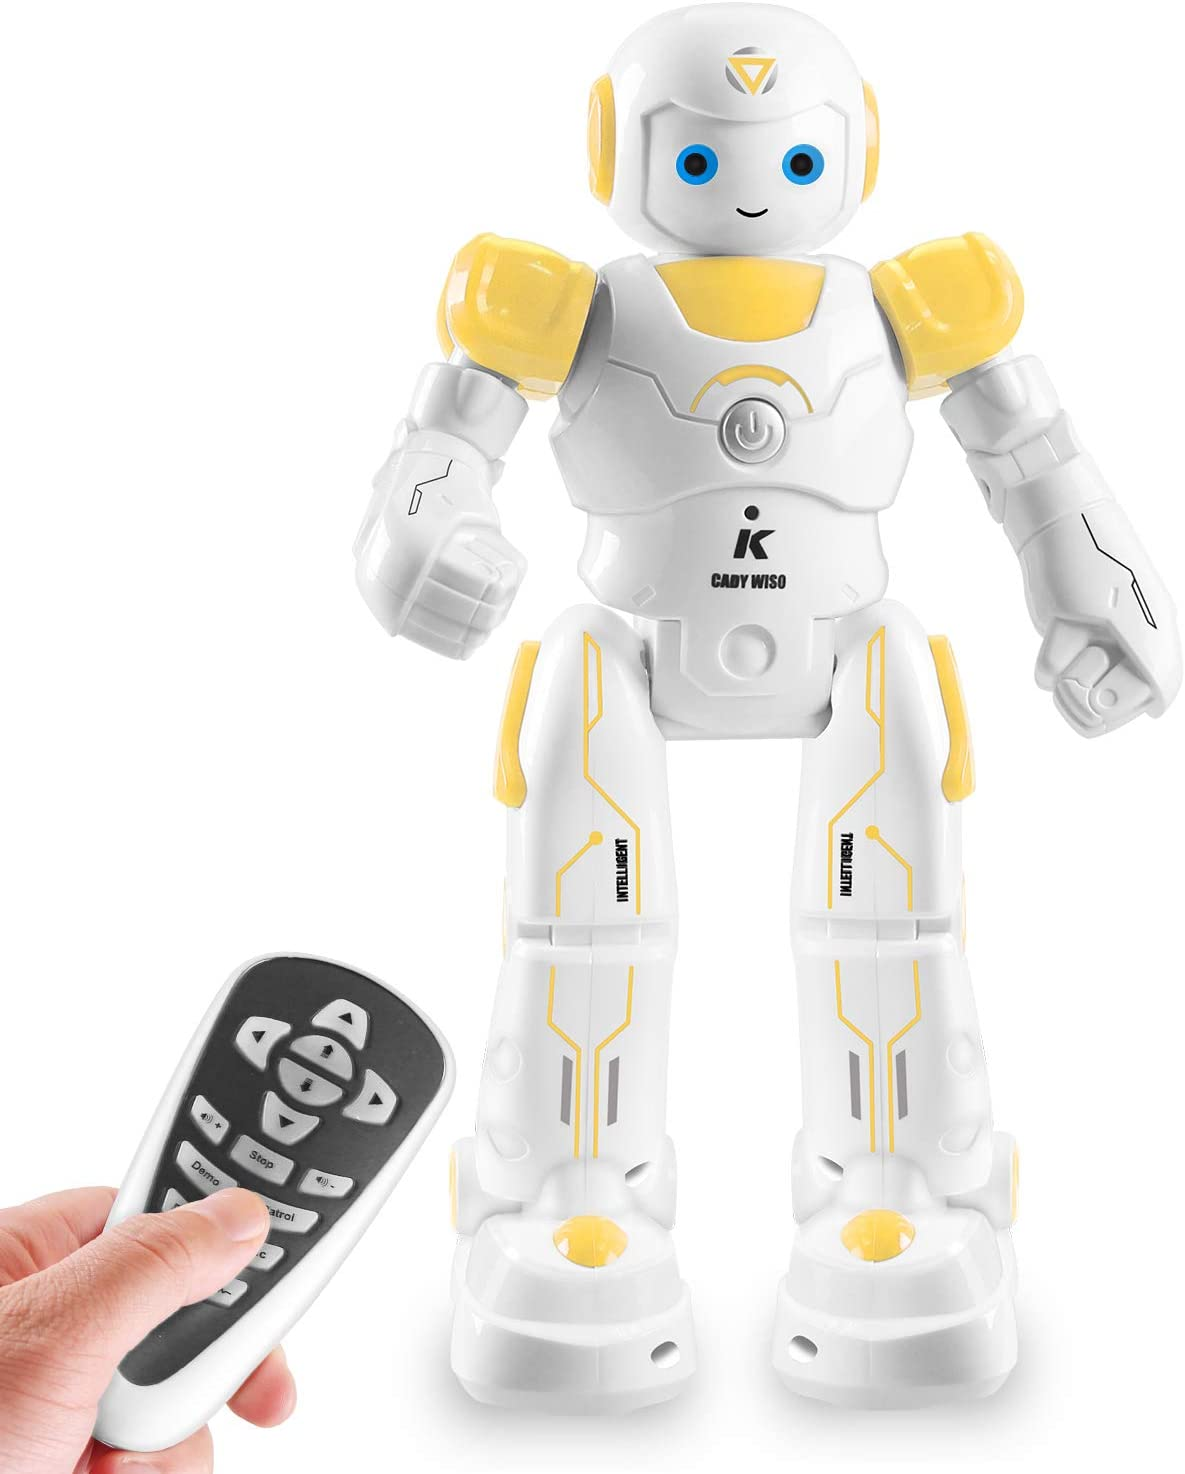 IHBUDS Smart and Programmable Remote-Control Robot for Kids. Beginner's STEM Toy Robot Friend for Kids to Learn as They Play-(Yellow)